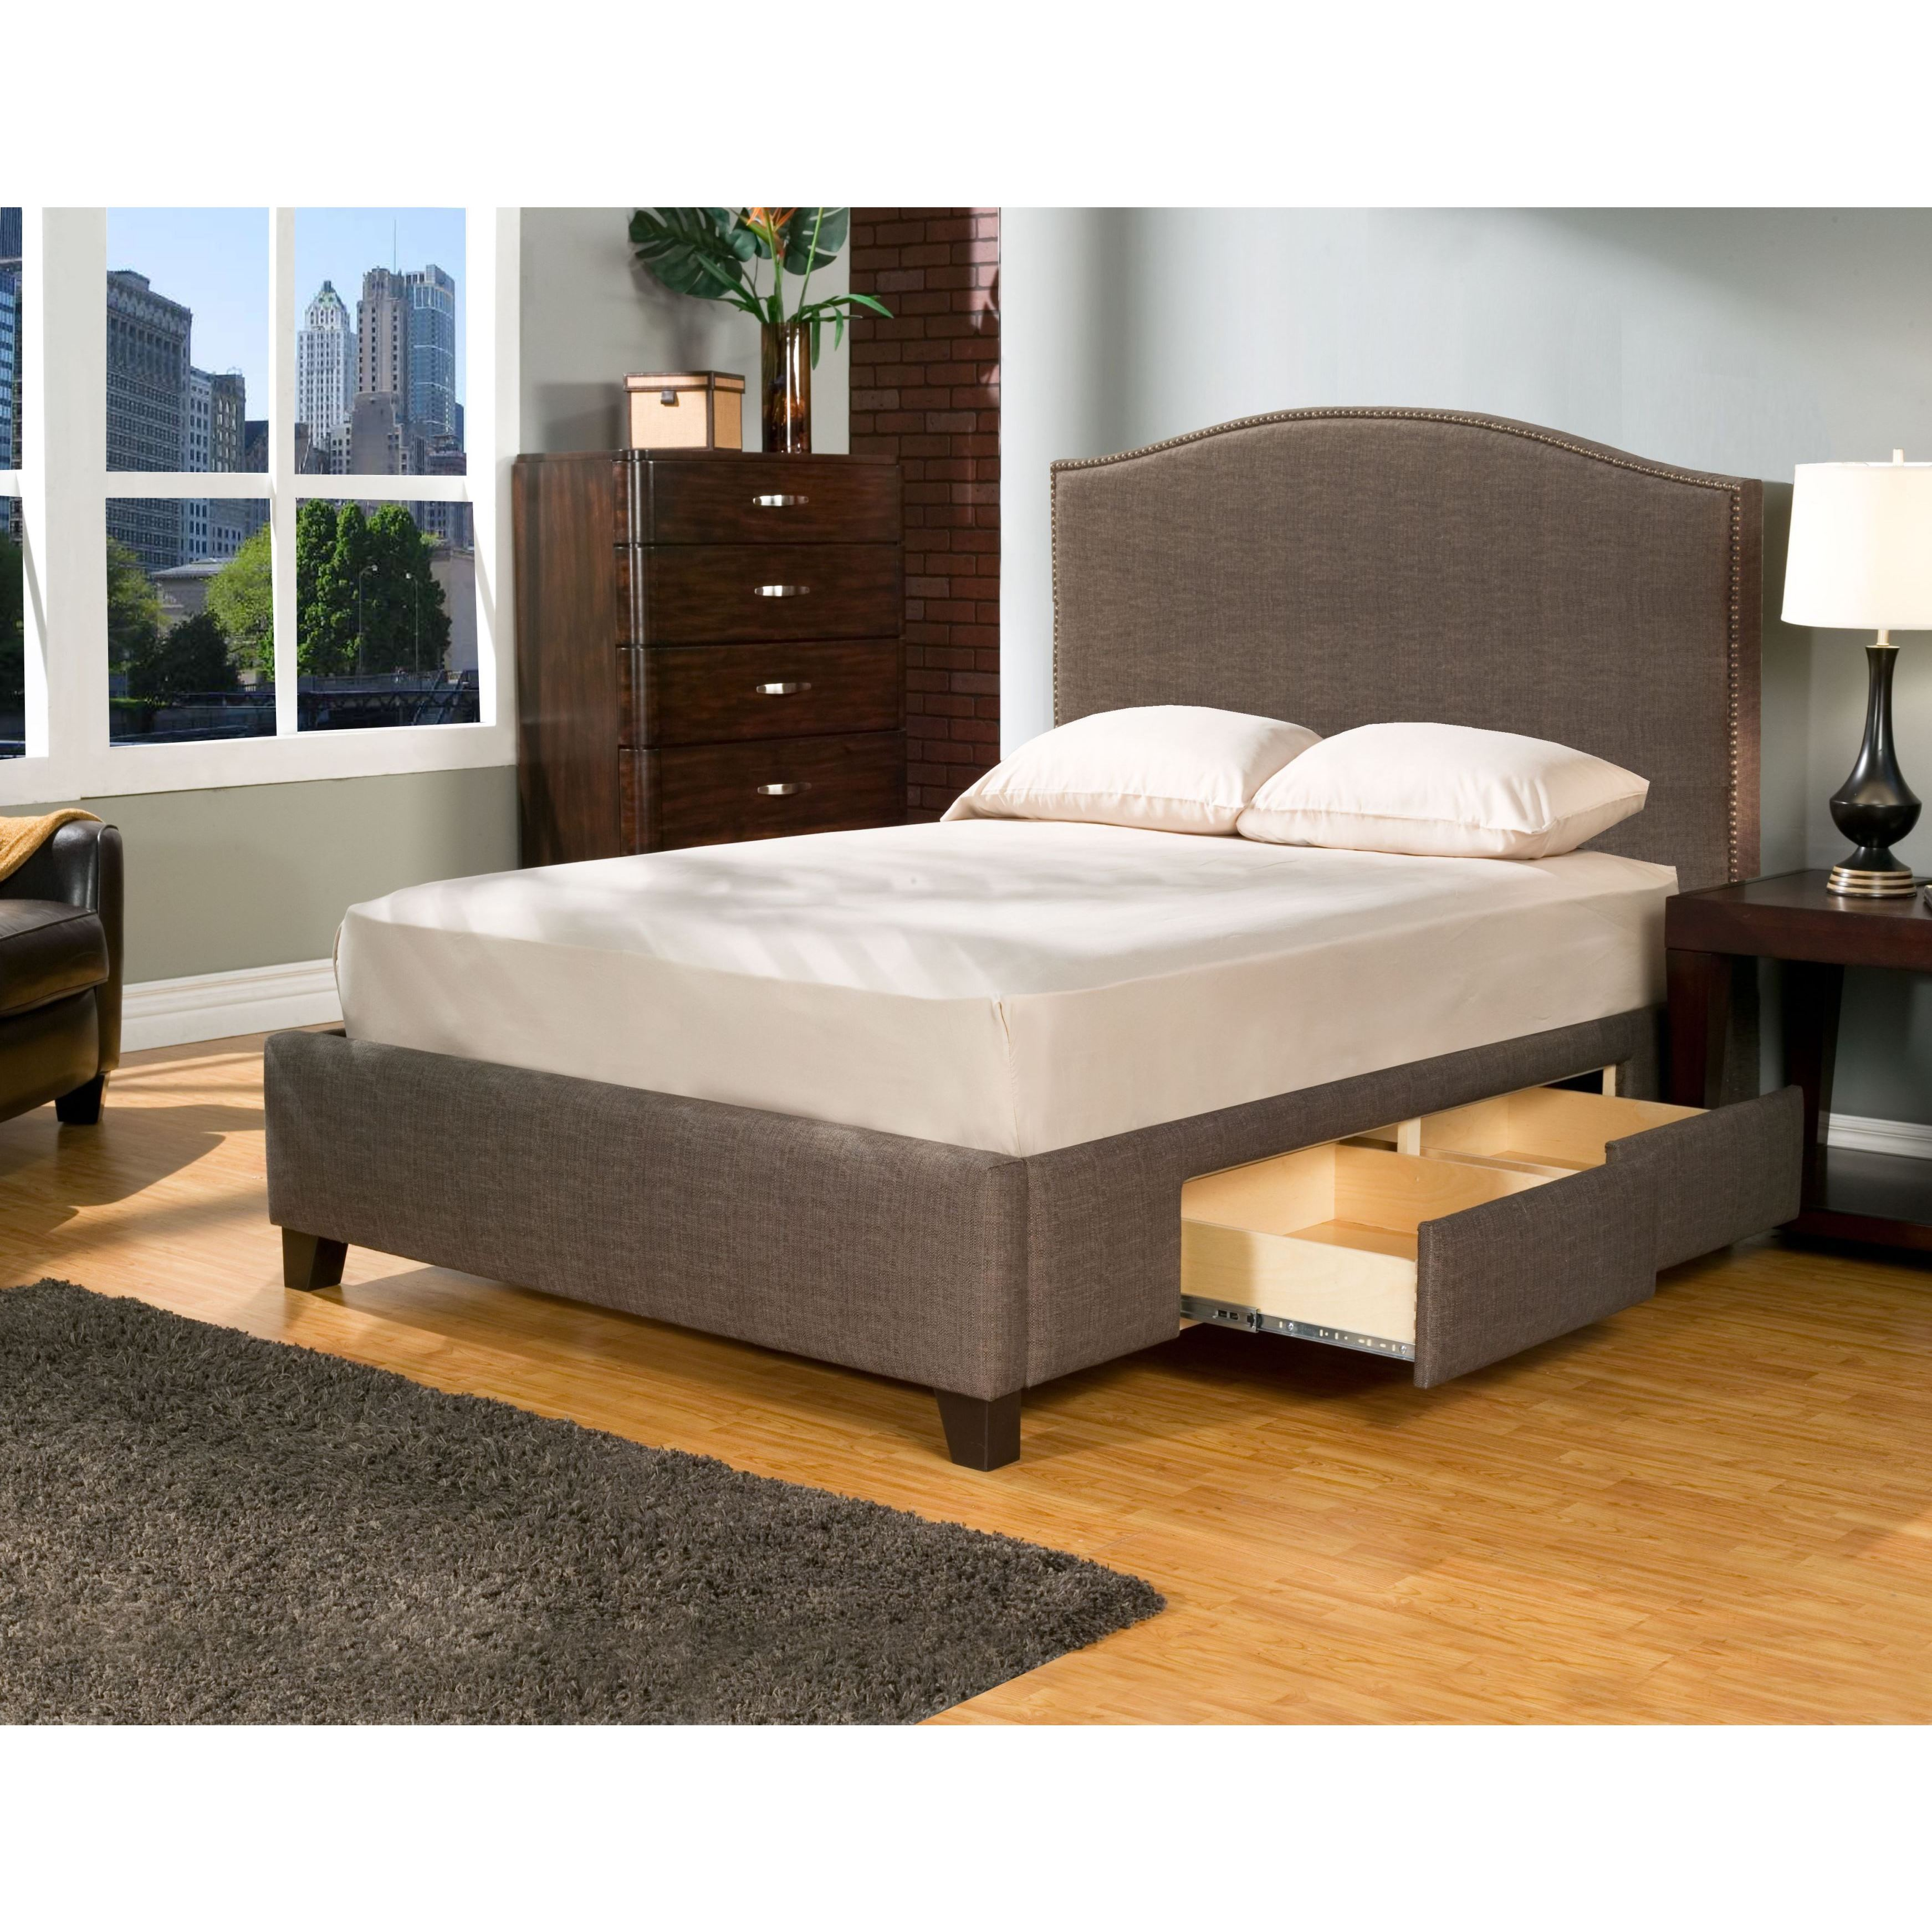 Seahawk Designs Newport Char-Brown 4 Drawer Upholstered Bed